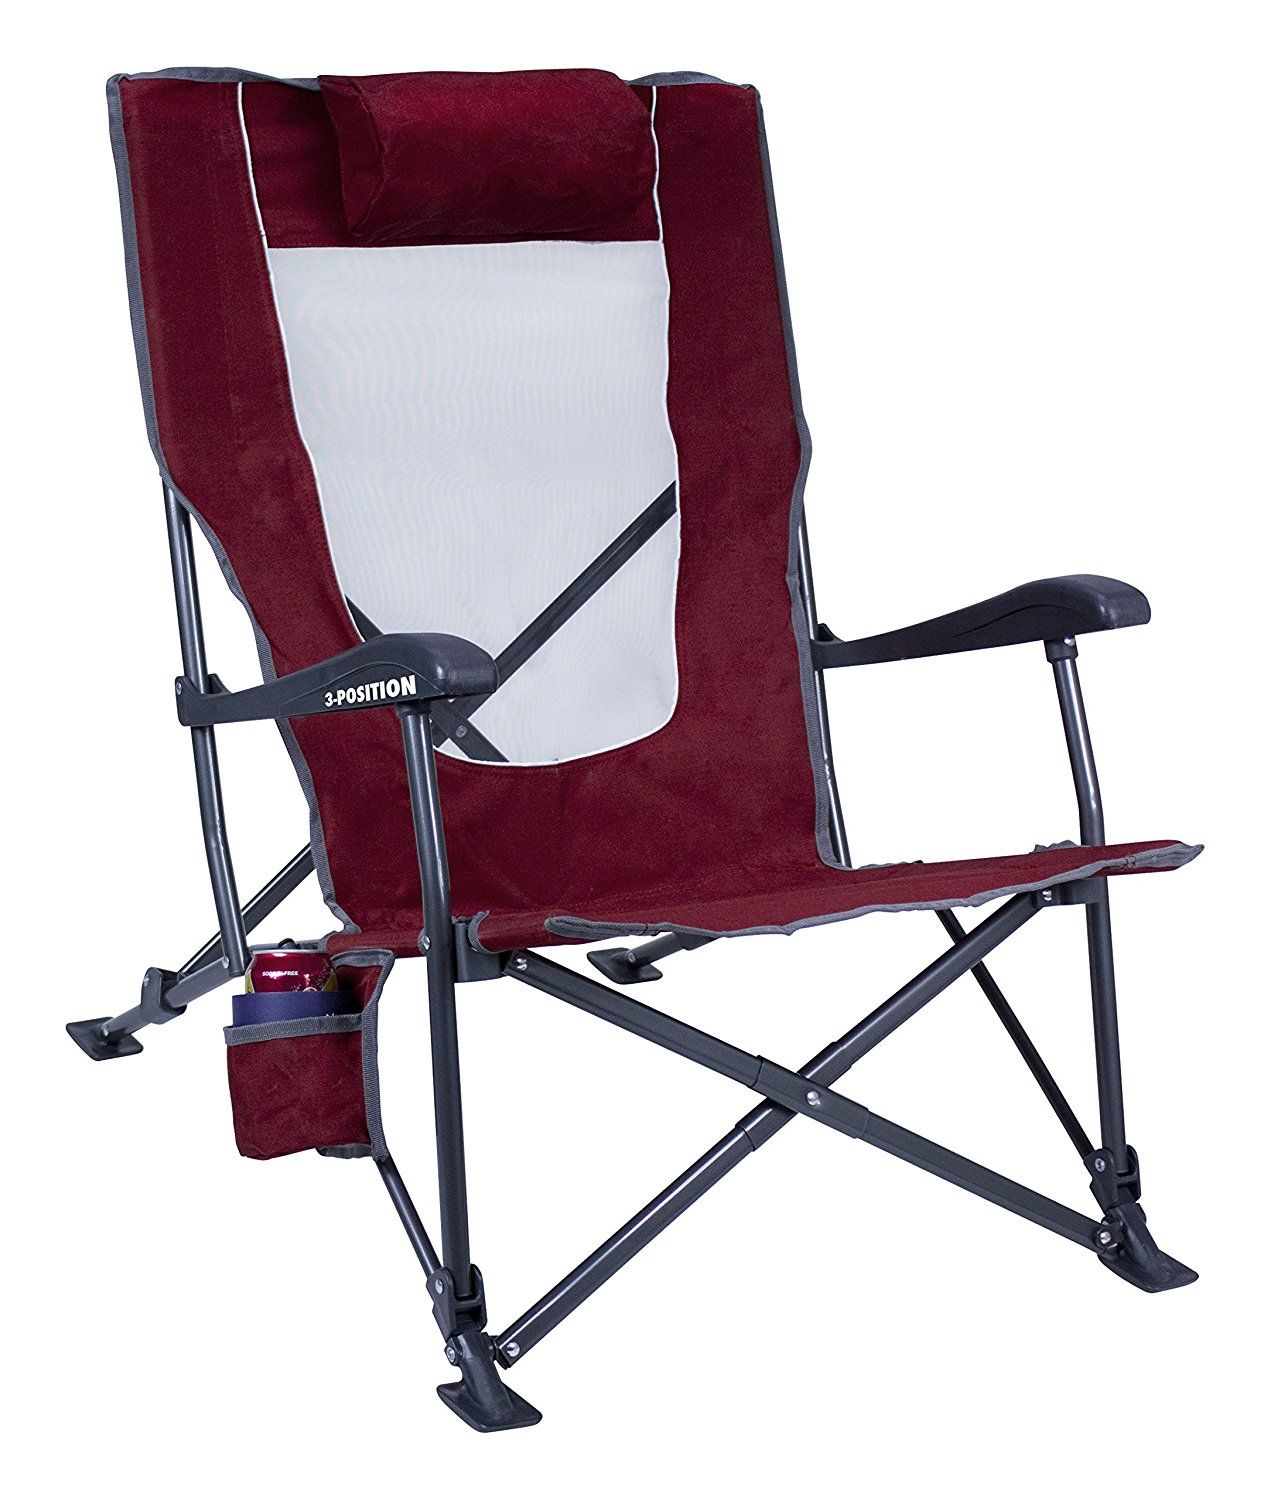 GCI Outdoor LowRide Recliner, Cinnamon *** This is an